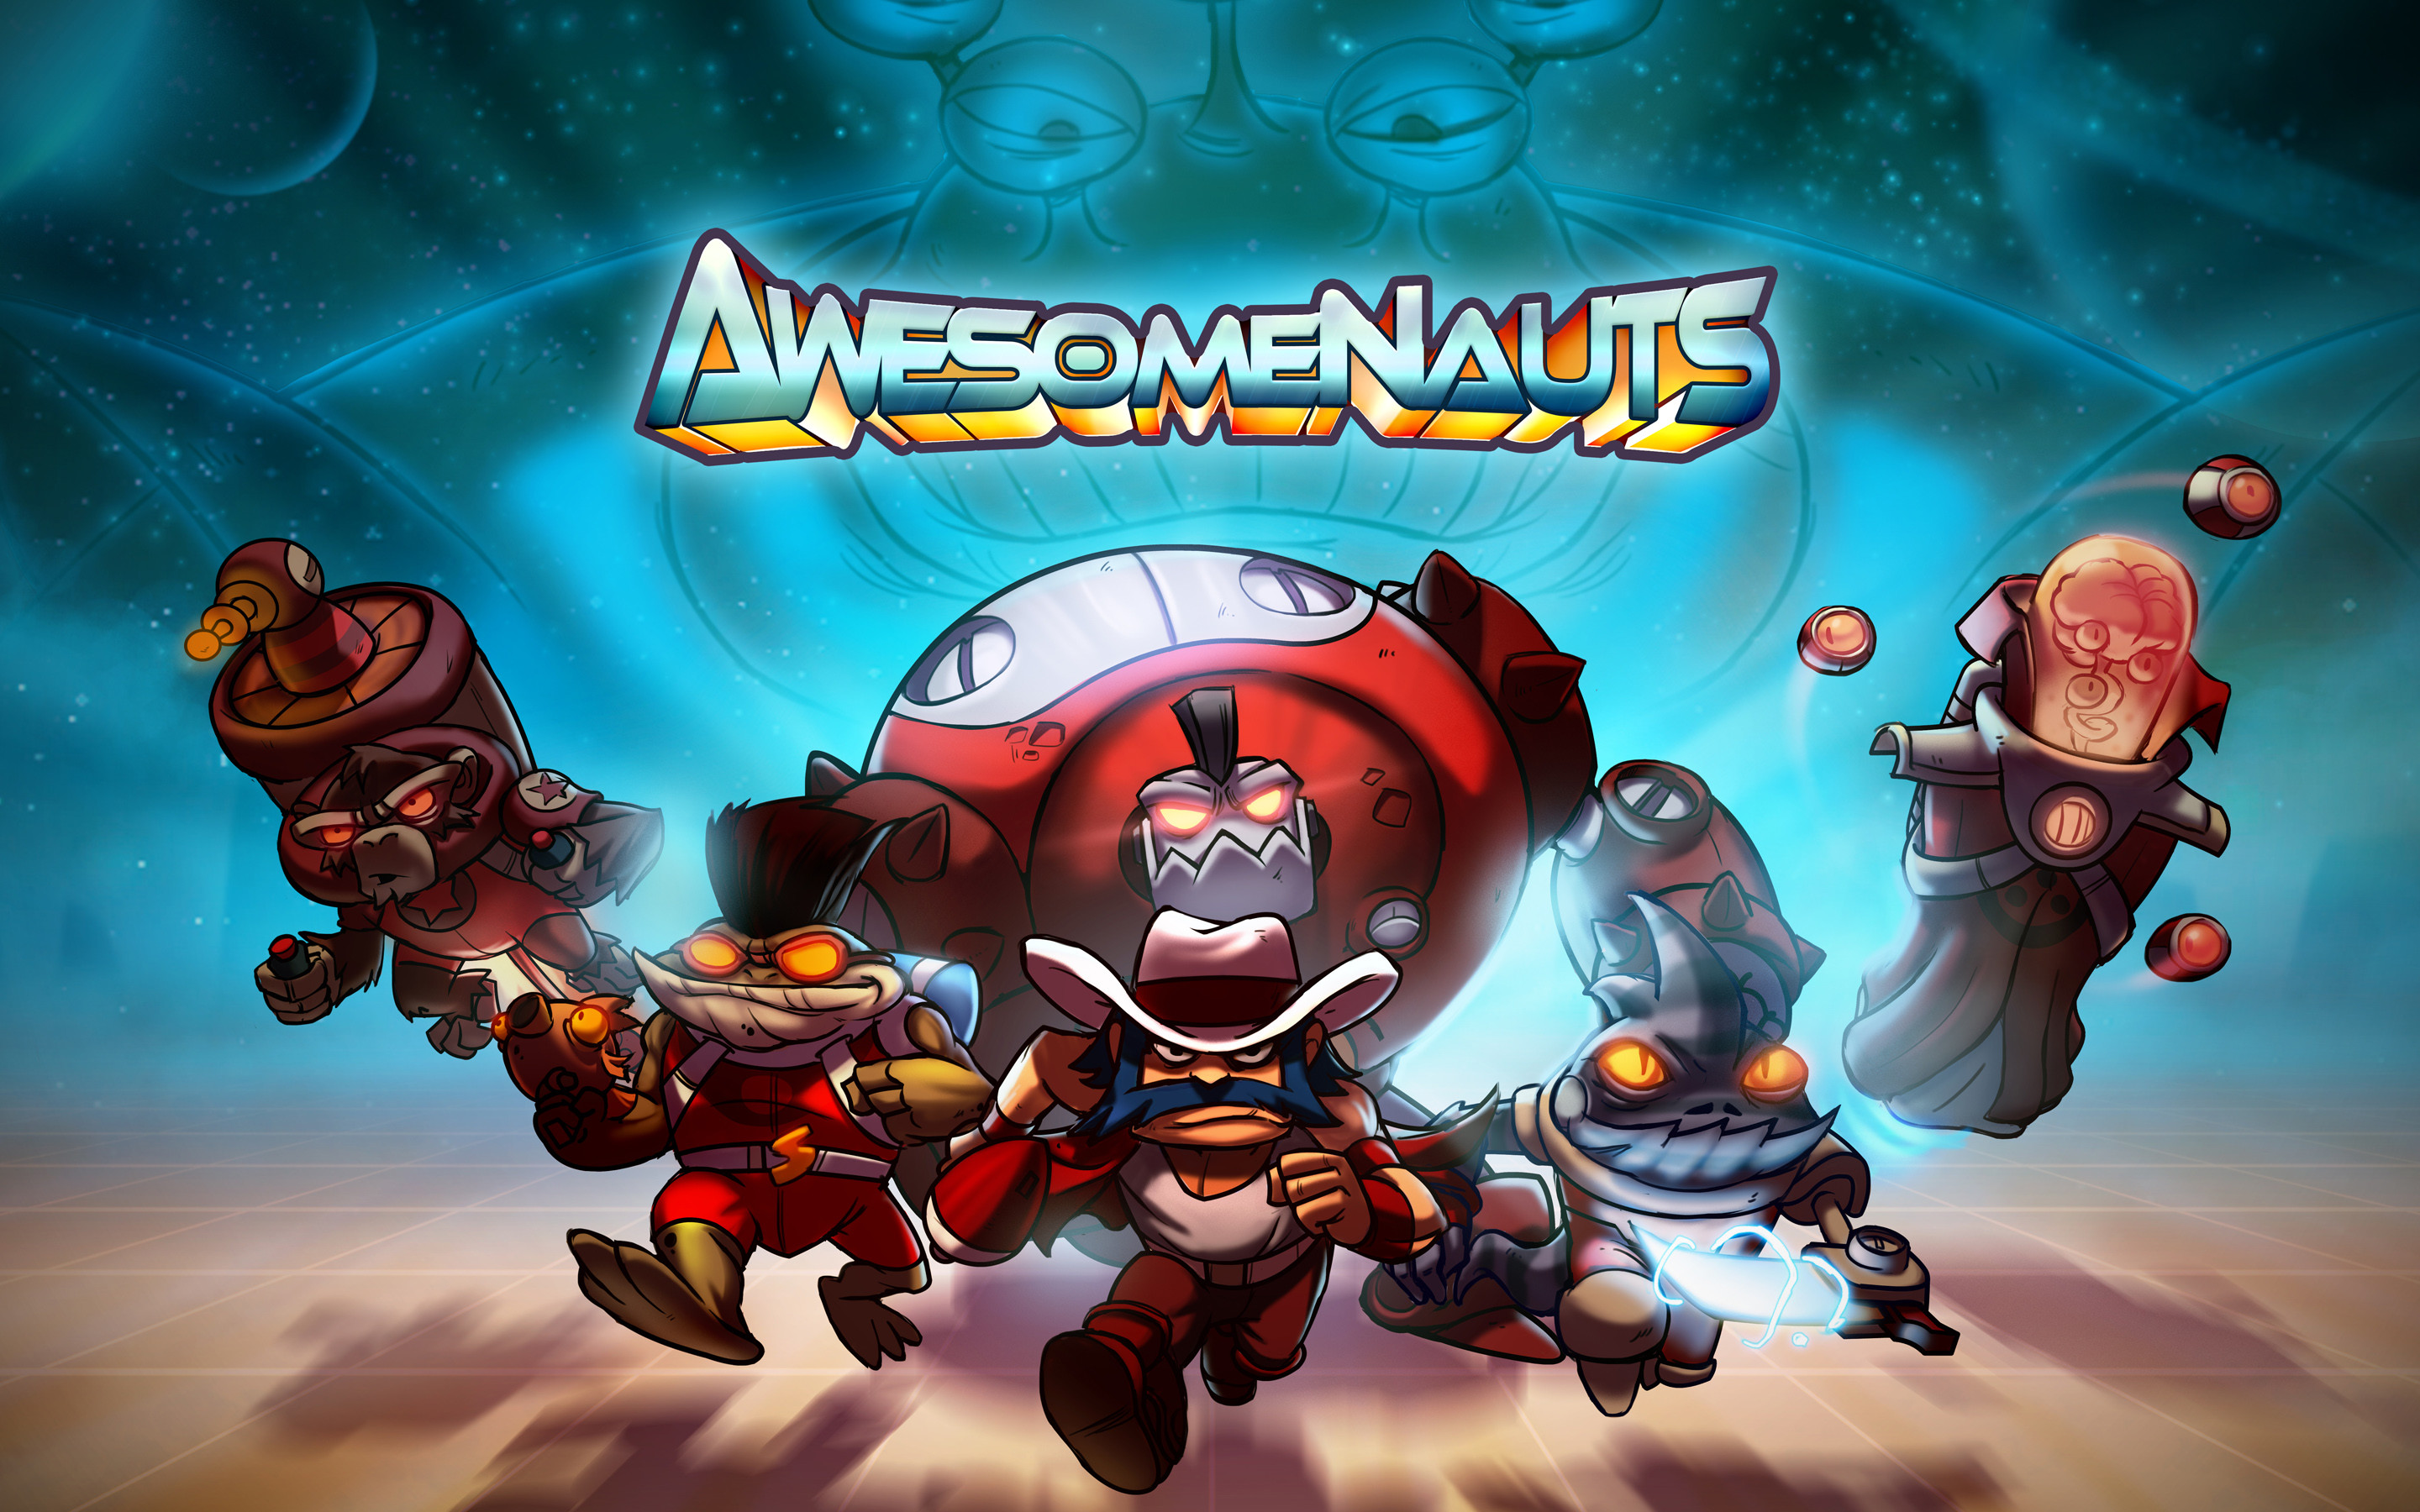 Res: 2880x1800, Awesomenauts Video Game